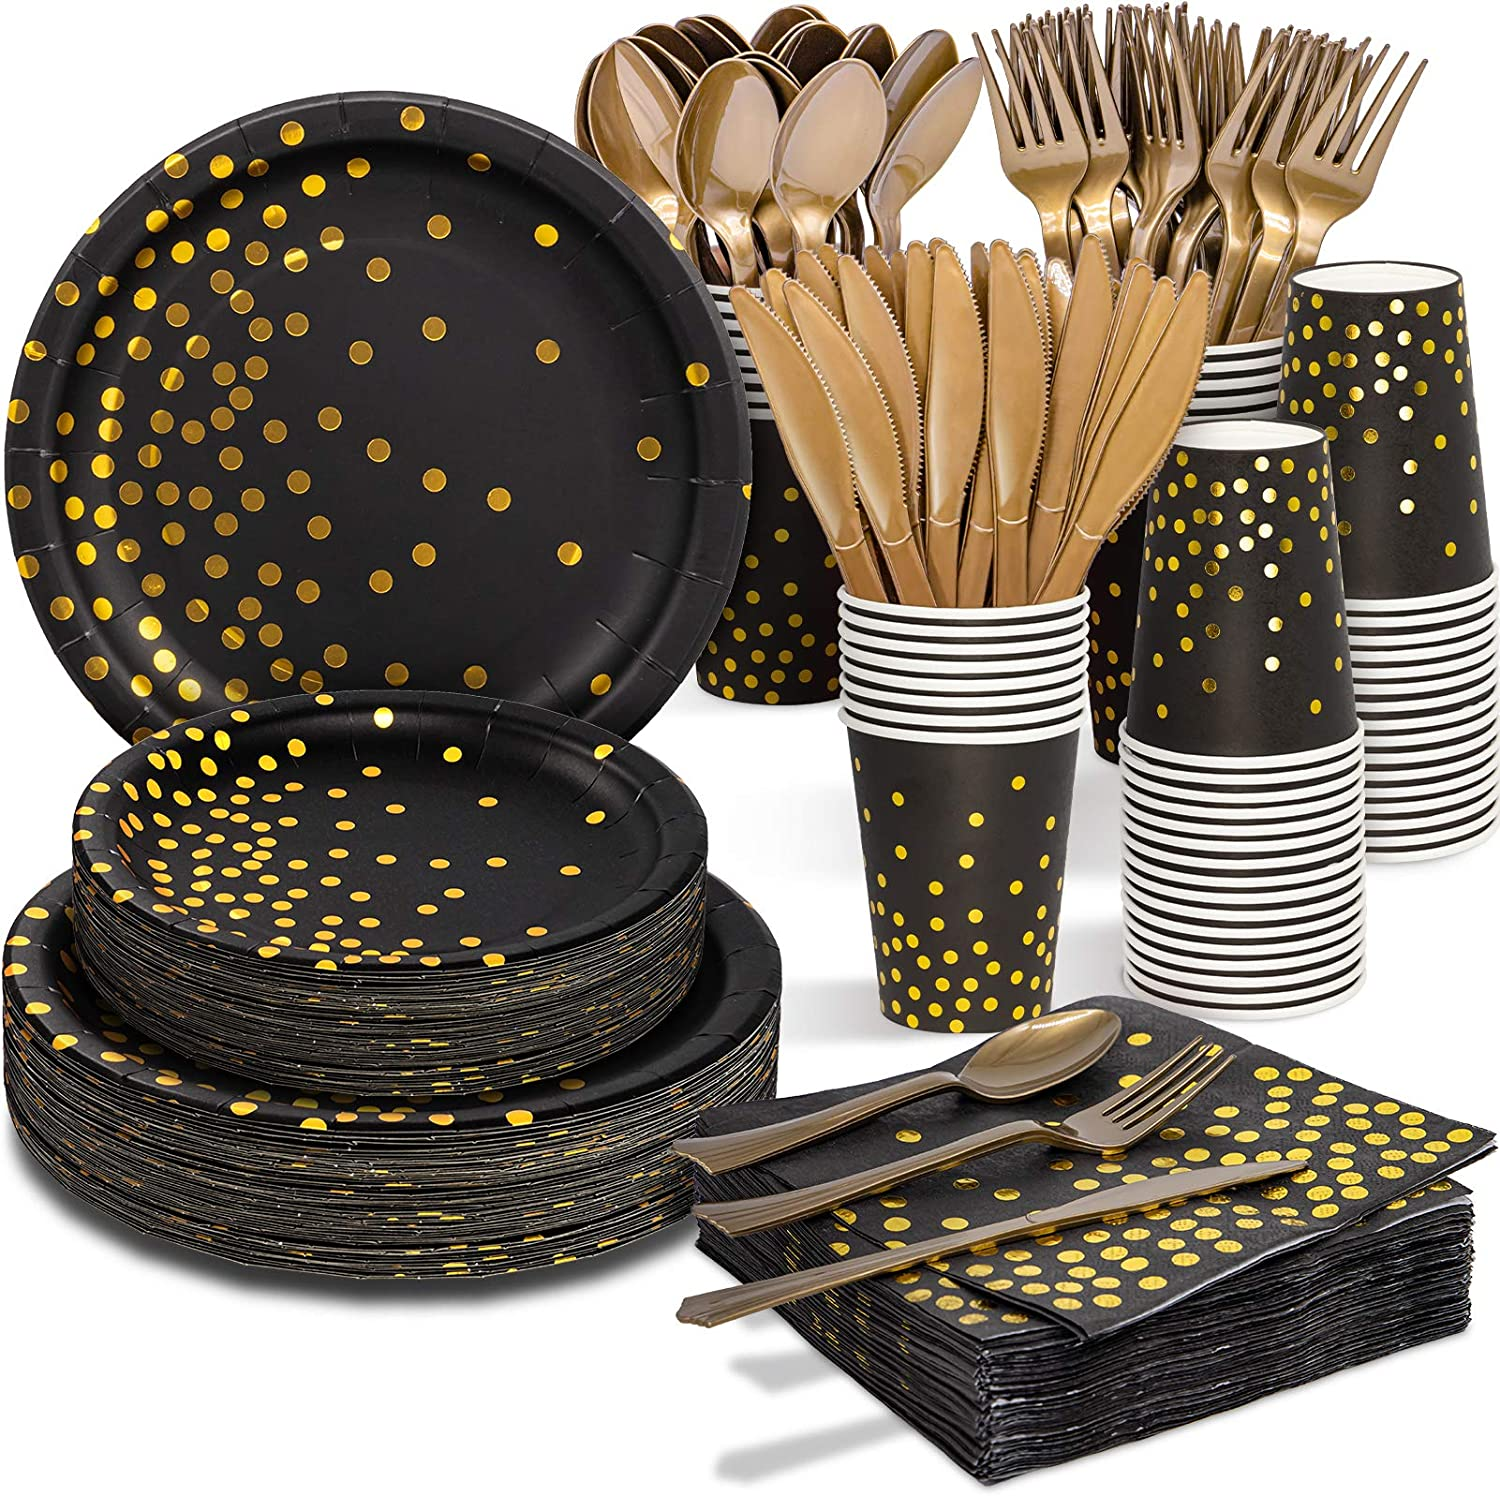 Black and Gold Easy-to-use Wholesale Party Supplies - Dinnerware 350 PCS Se Disposable